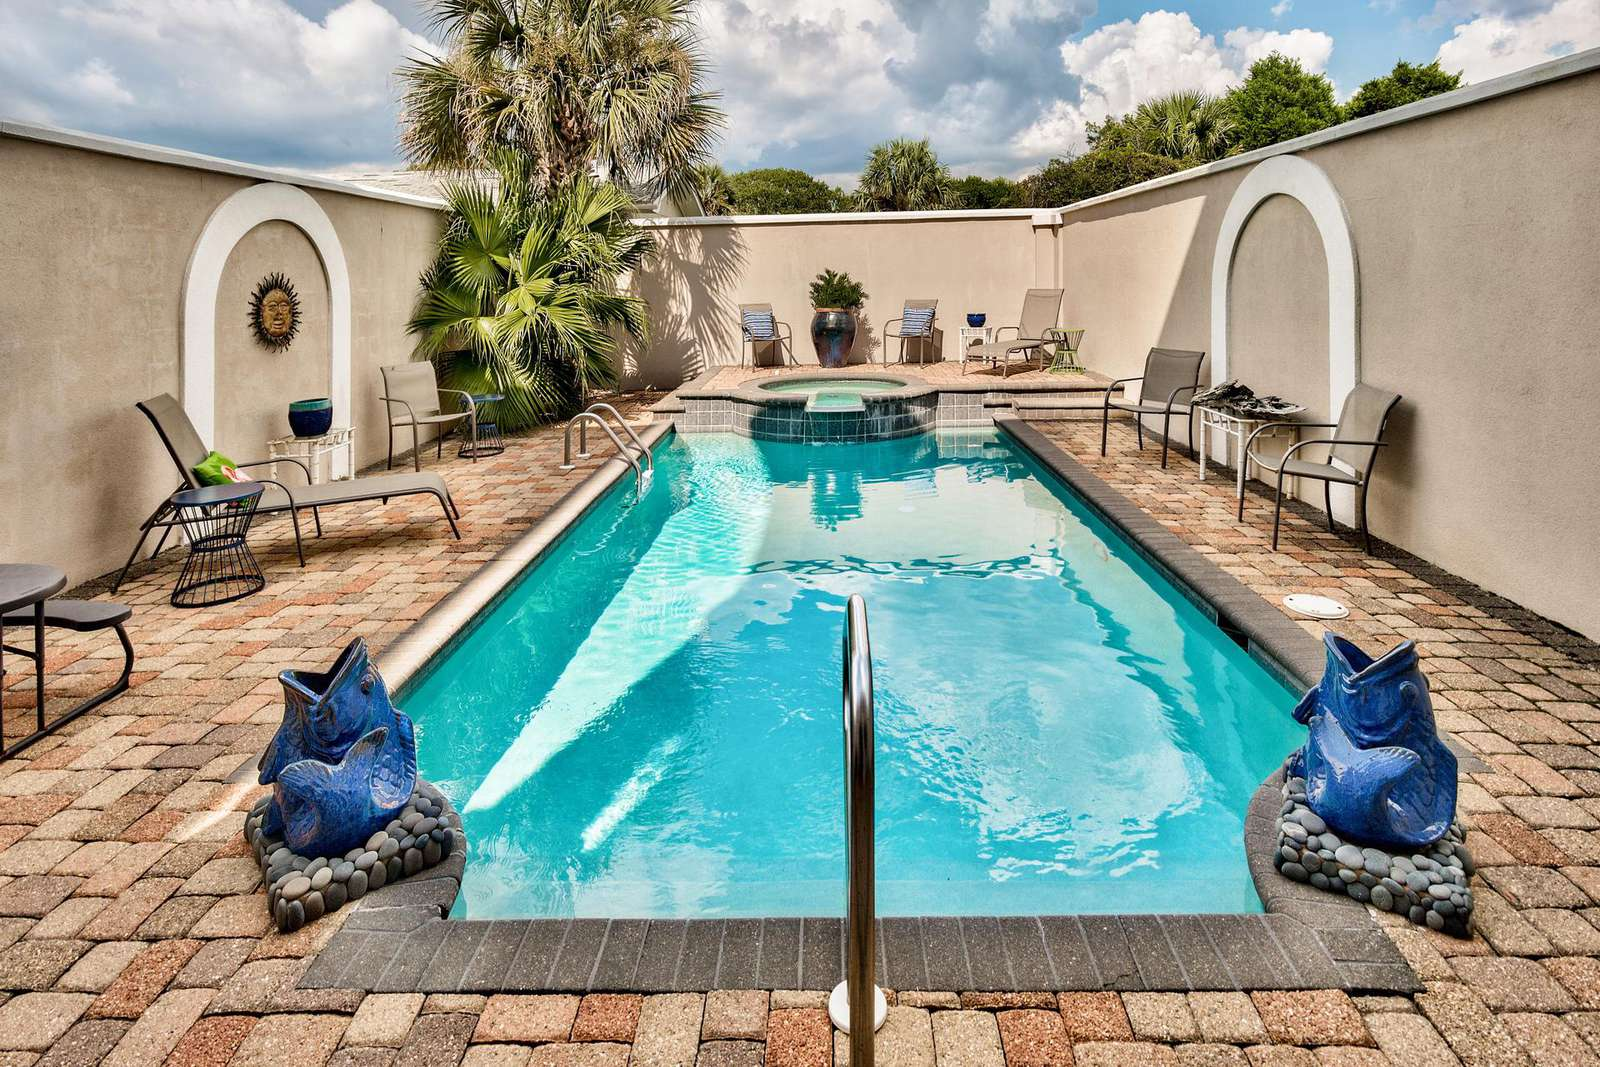 High Dune - 5 Bedroom Home - Private Pool & Hot Tub!  West End - Elevator!!!